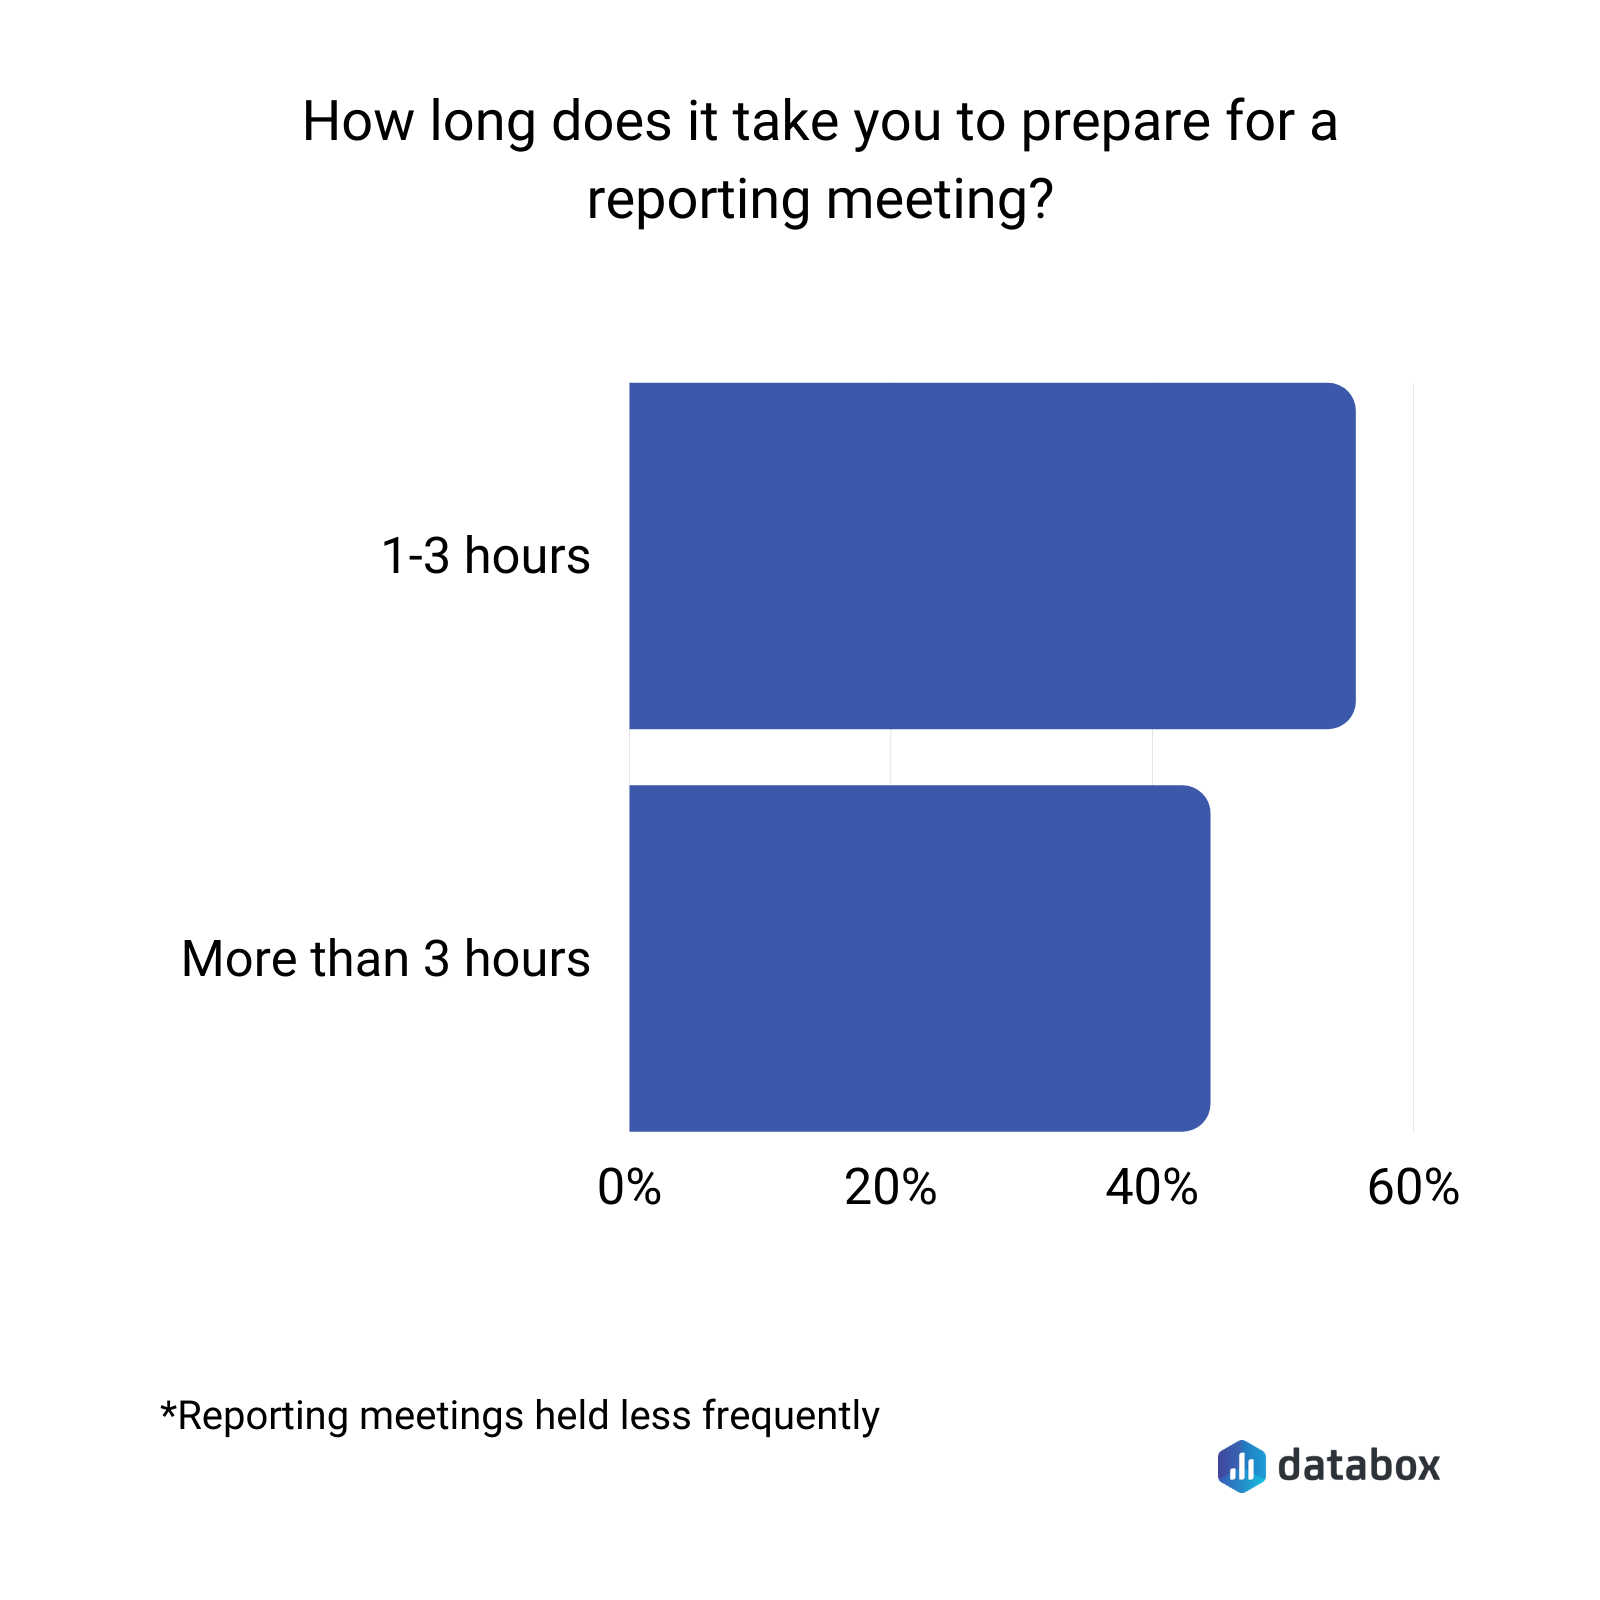 how long does it take to prepare for quarterly or less frequent meetings